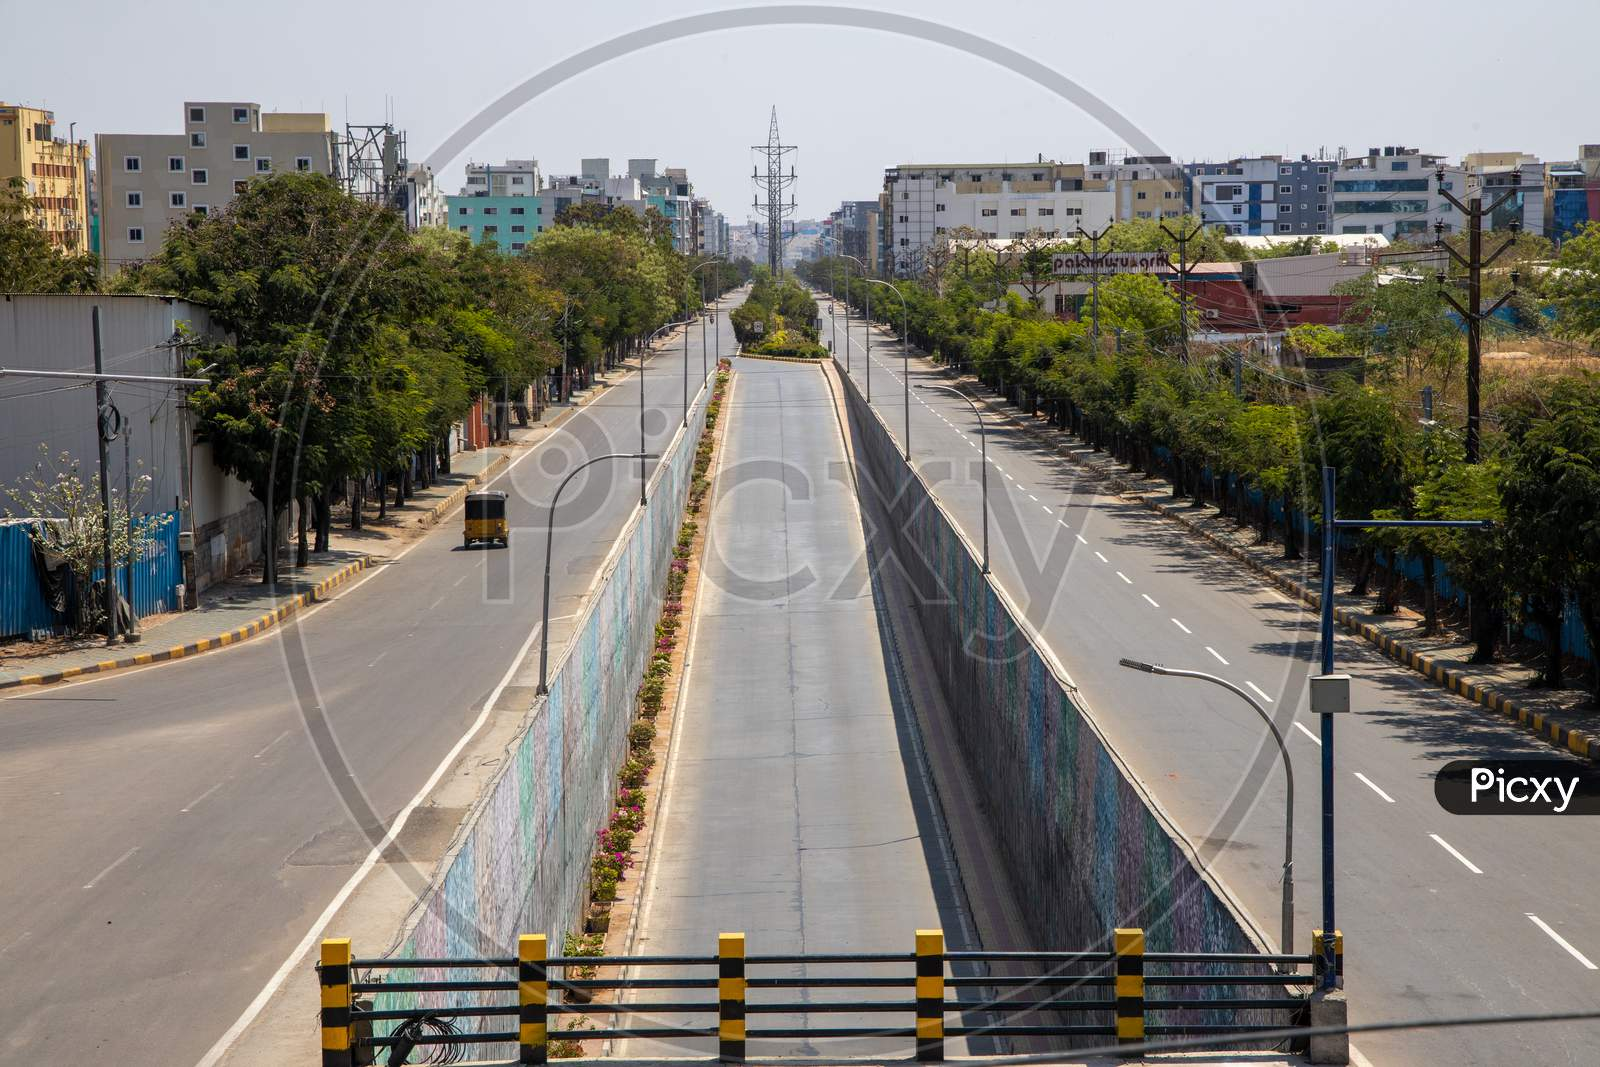 Janata Curfew , Deserted Roads At Busy Madapur 100 Feet Road  In Hyderabad  As Indian Prime Minister Narendra Modi Called For A 14 Hour Janta  Curfew Or Self-Imposed  Quarantine To Break The  Highly Contagious  Covid 19 Or Corona Virus Spread